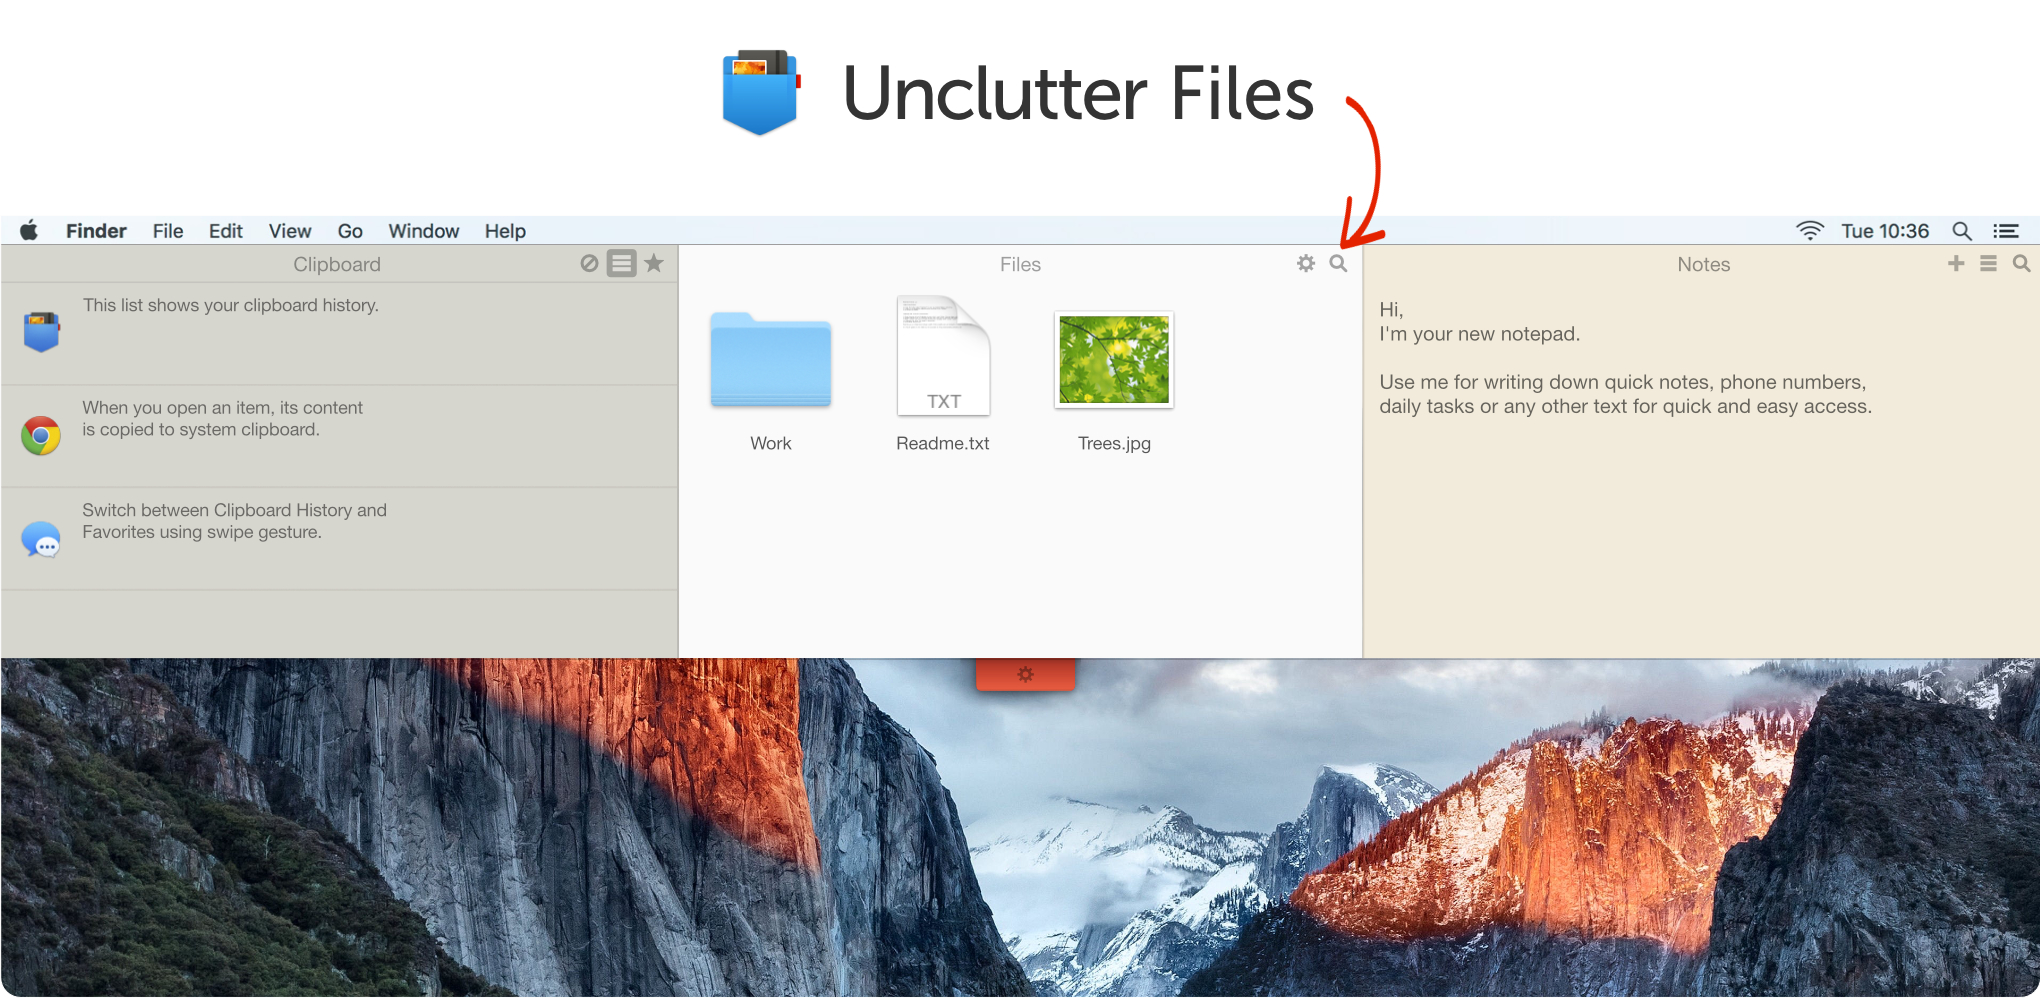 Unclutter Files will help you clean up Mac Desktop and store temporary files on Mac.